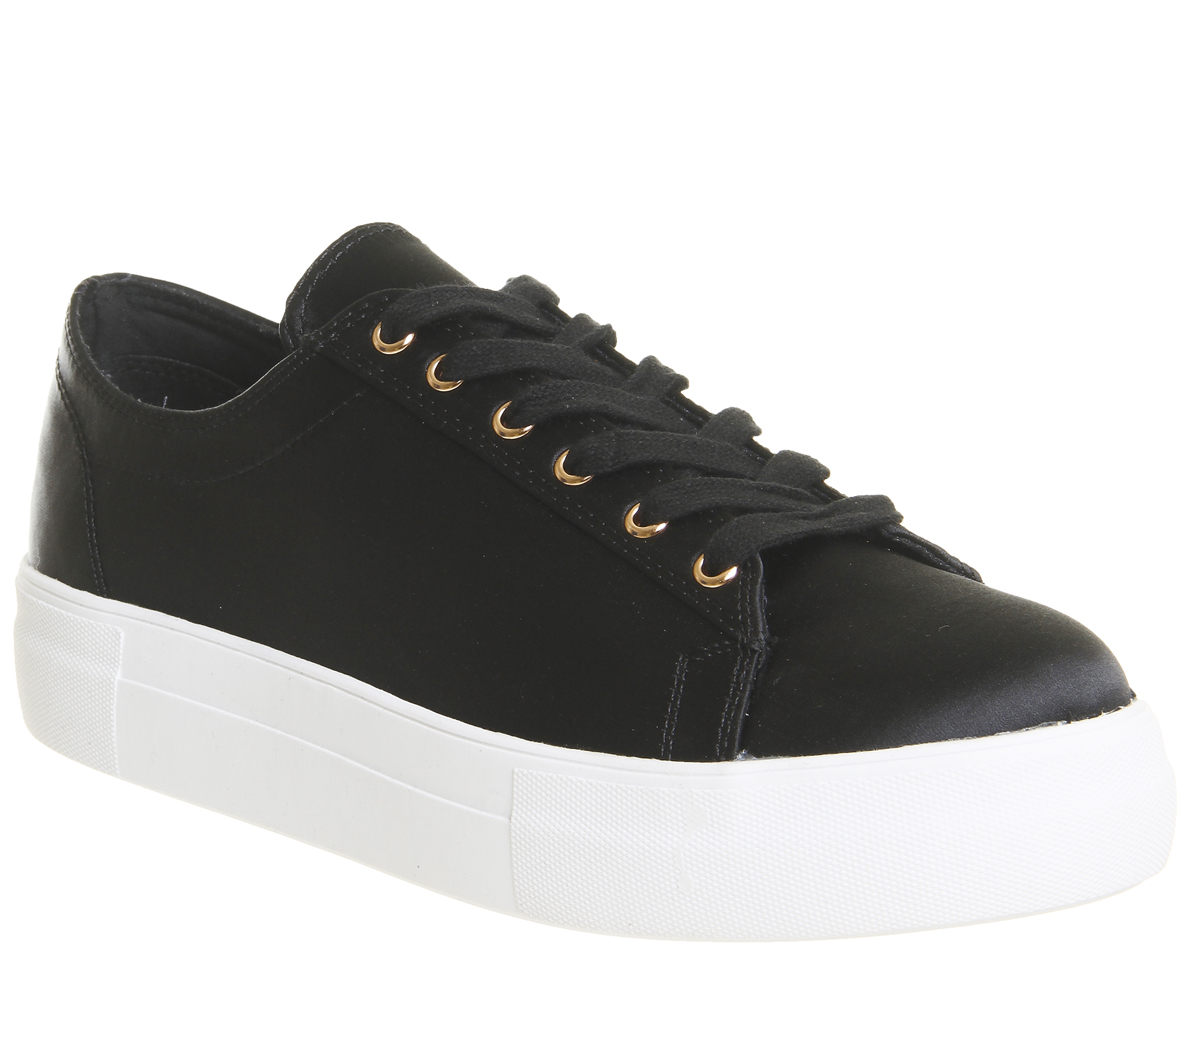 Damen Office Flicker Satin Lace Up Trainers Schwarz Schwarz SATIN Flache Schuhe